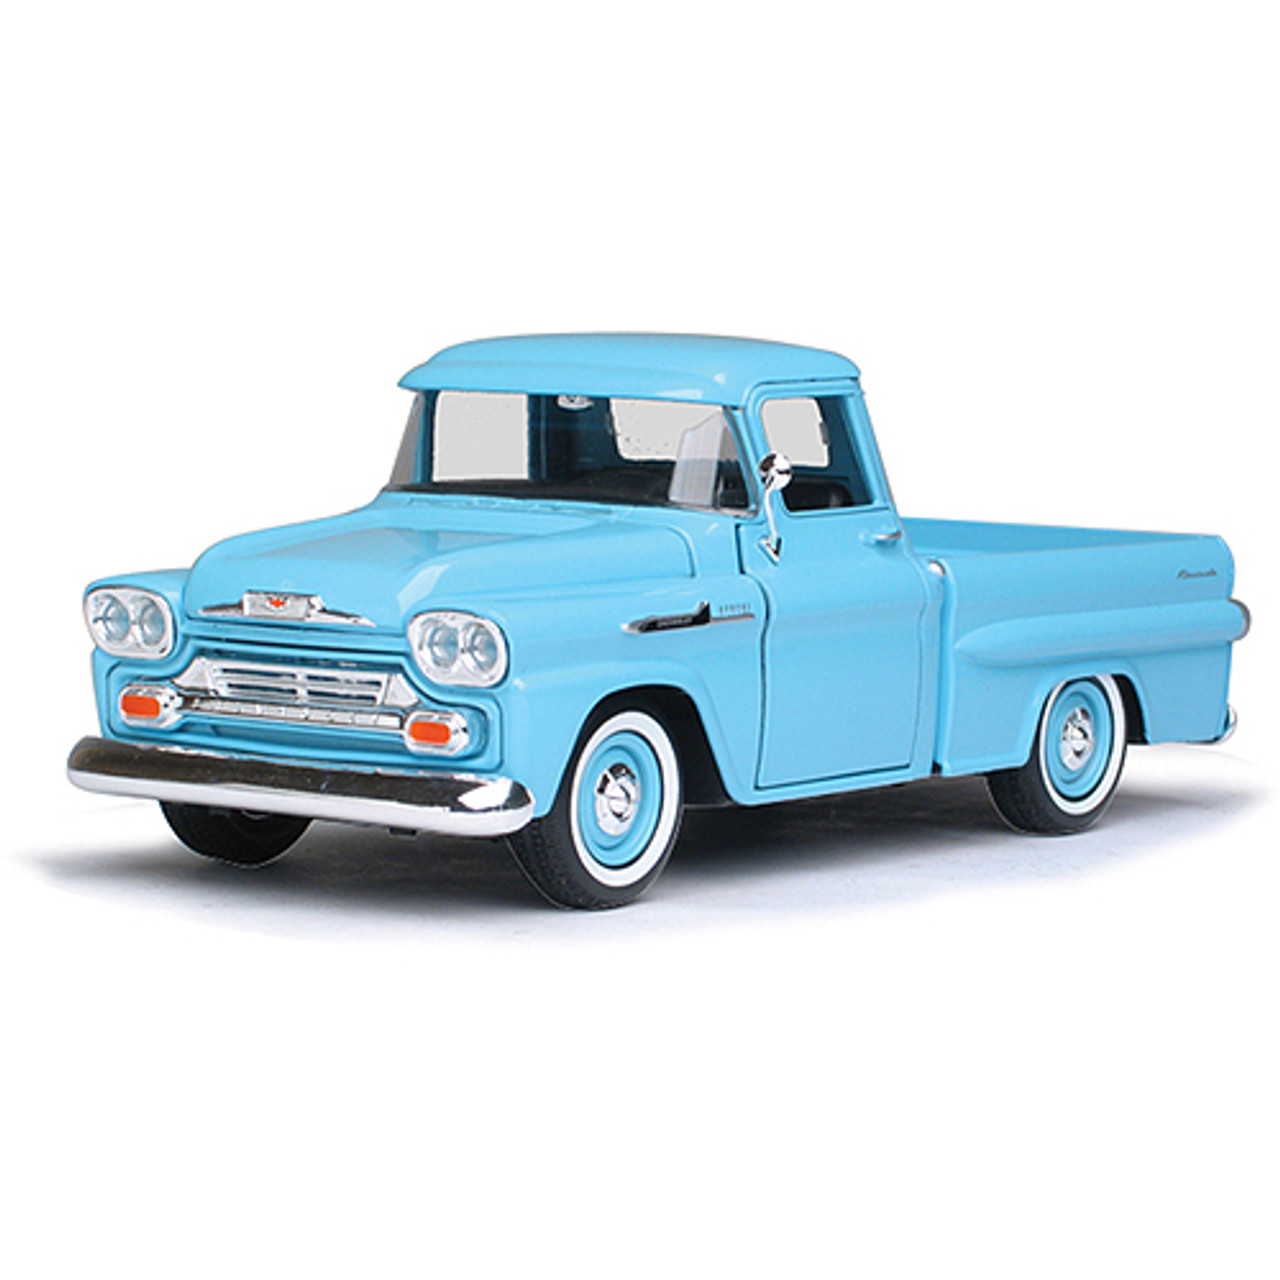 1958 Chevrolet Apache Fleetside Pickup Light Blue 1 24 Scale Diecast Model By Motormax Fairfield Collectibles The 1 Source For High Quality Diecast Scale Model Cars